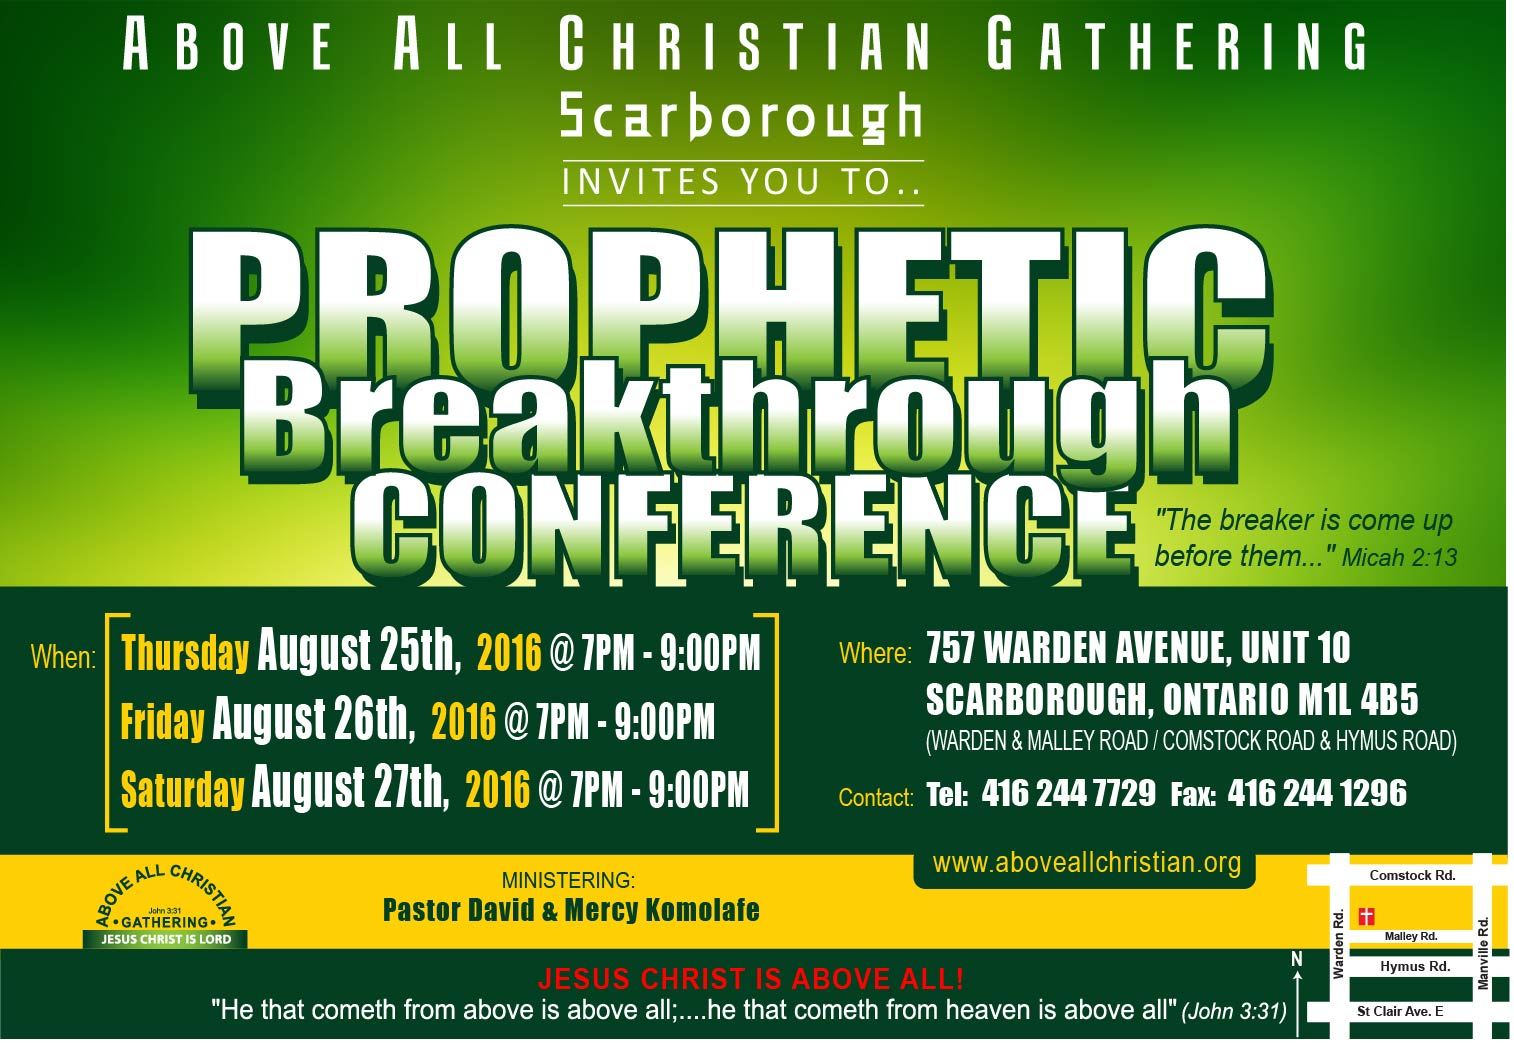 PROPHETIC BREAKTHROUGH CONFERENCE